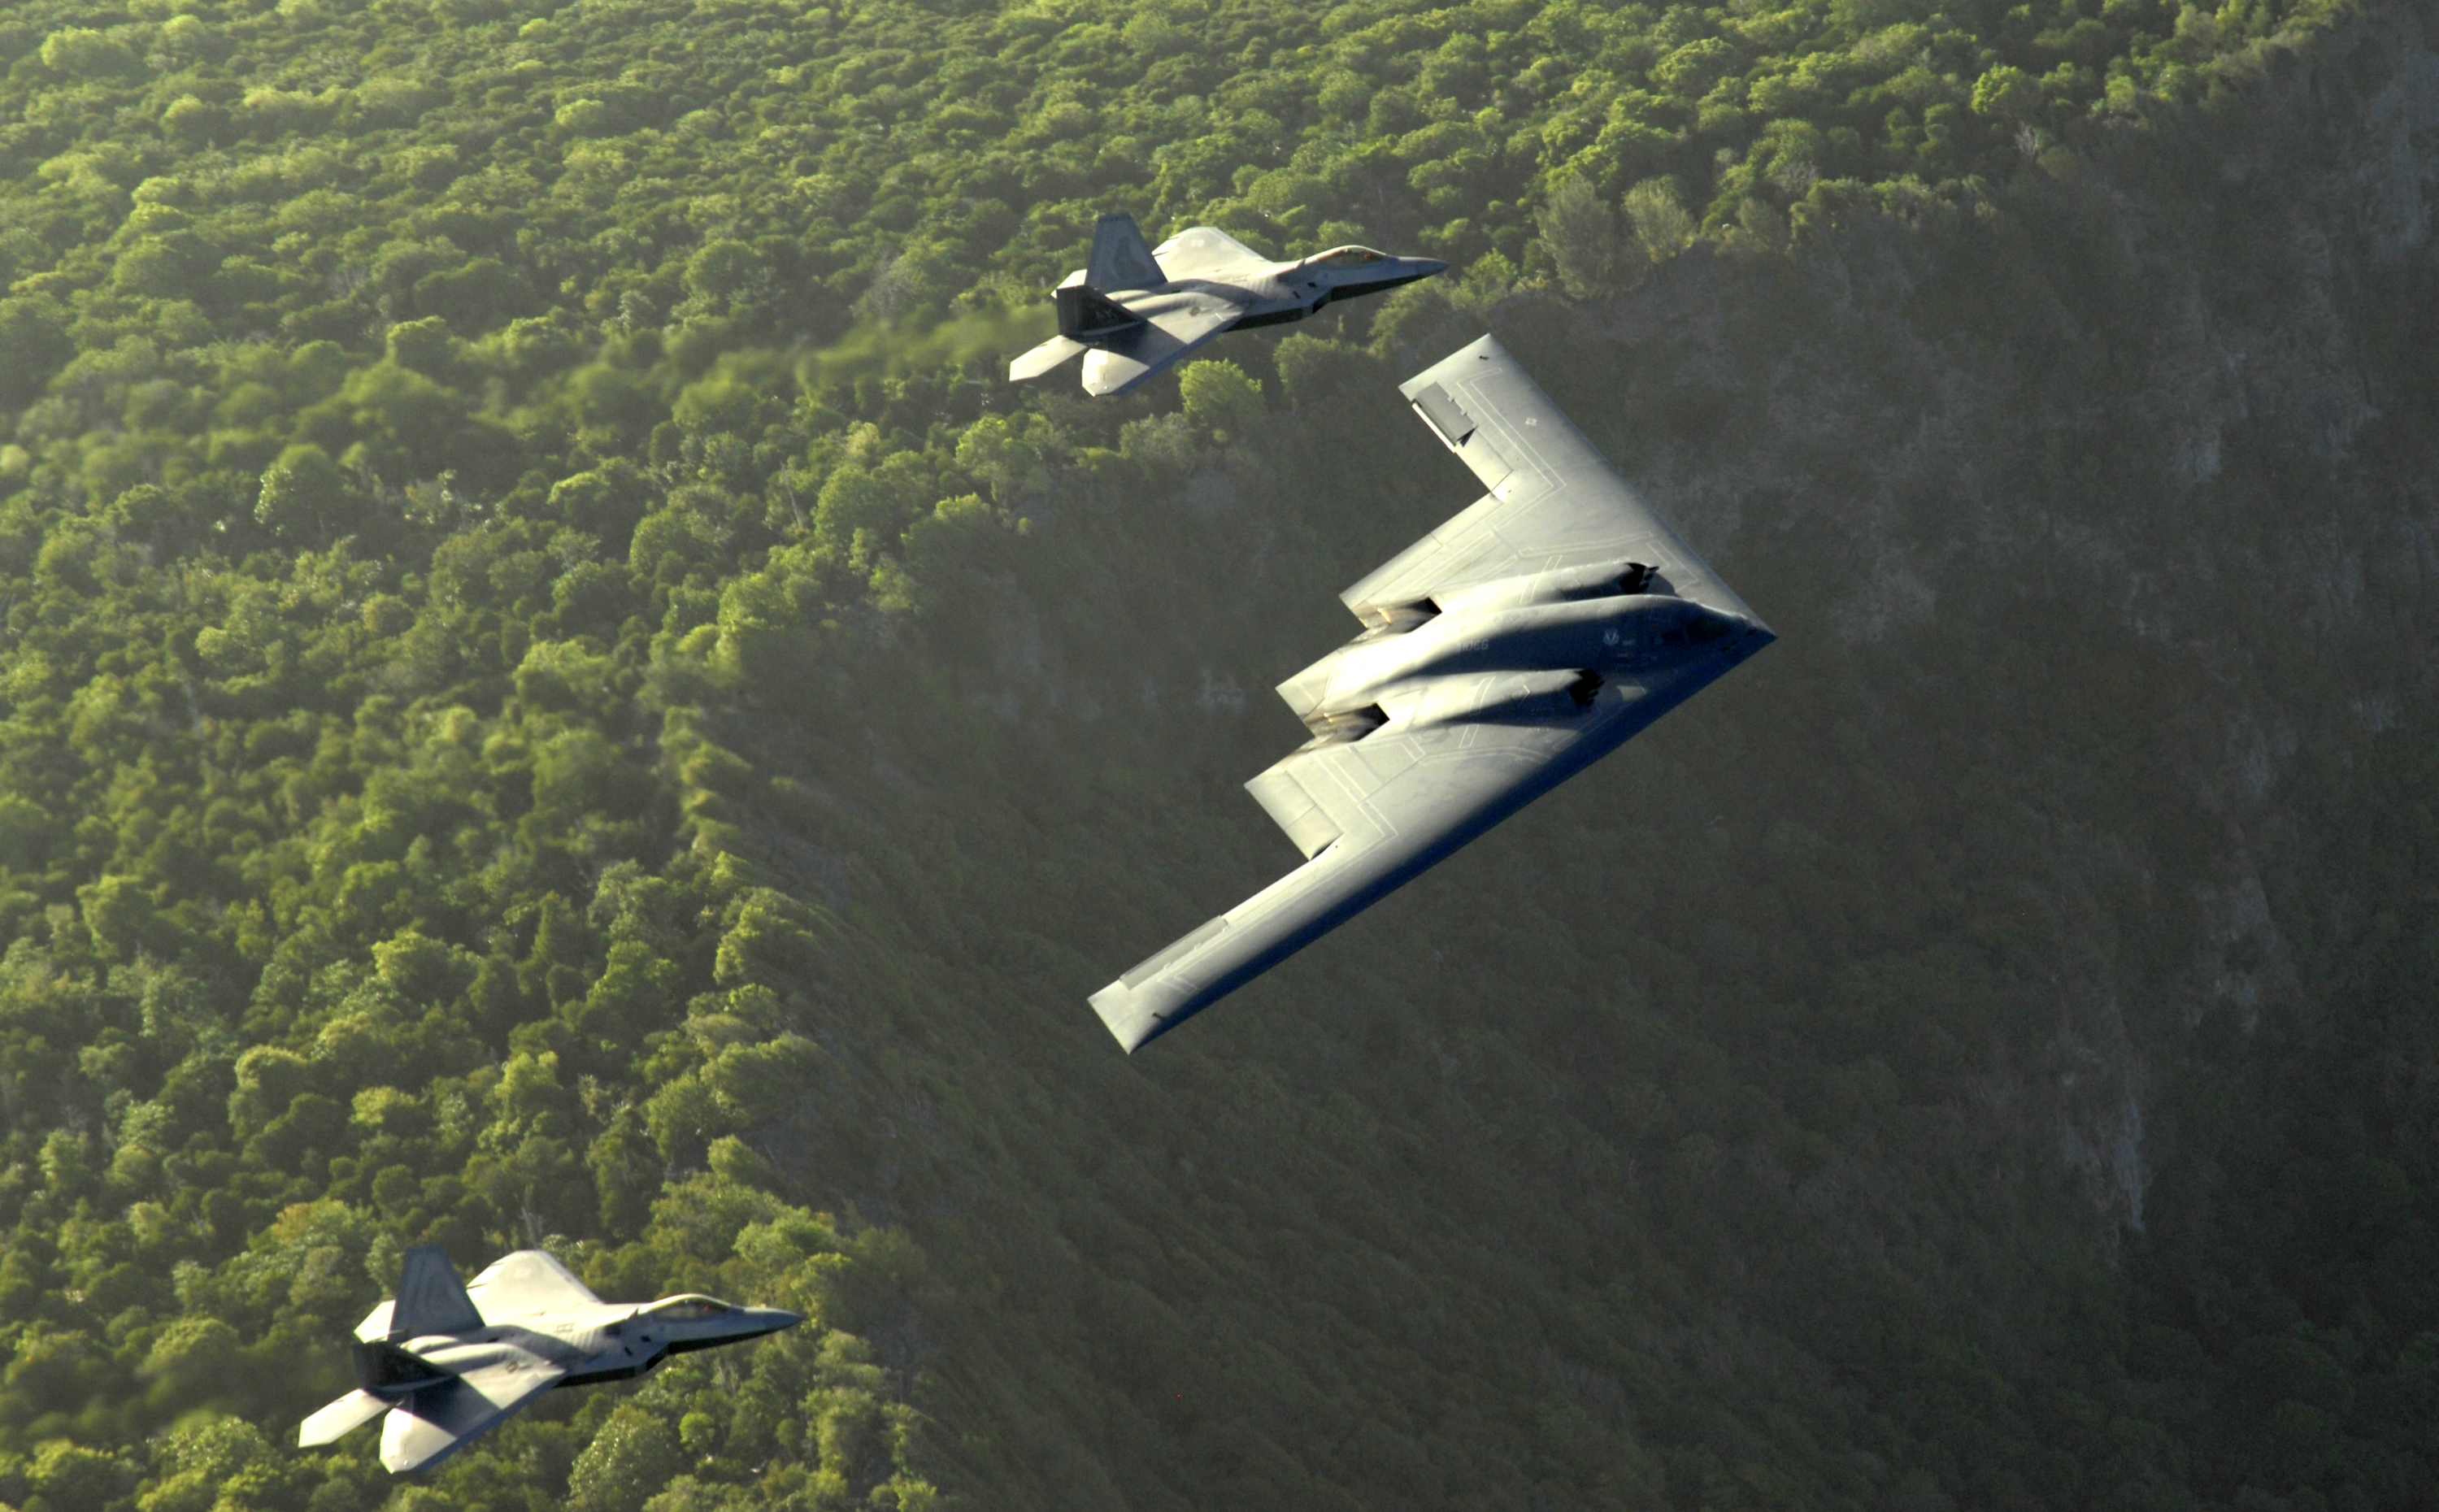 10 Stealth Aircraft HD Wallpapers Background Images   Wallpaper 3000x1860